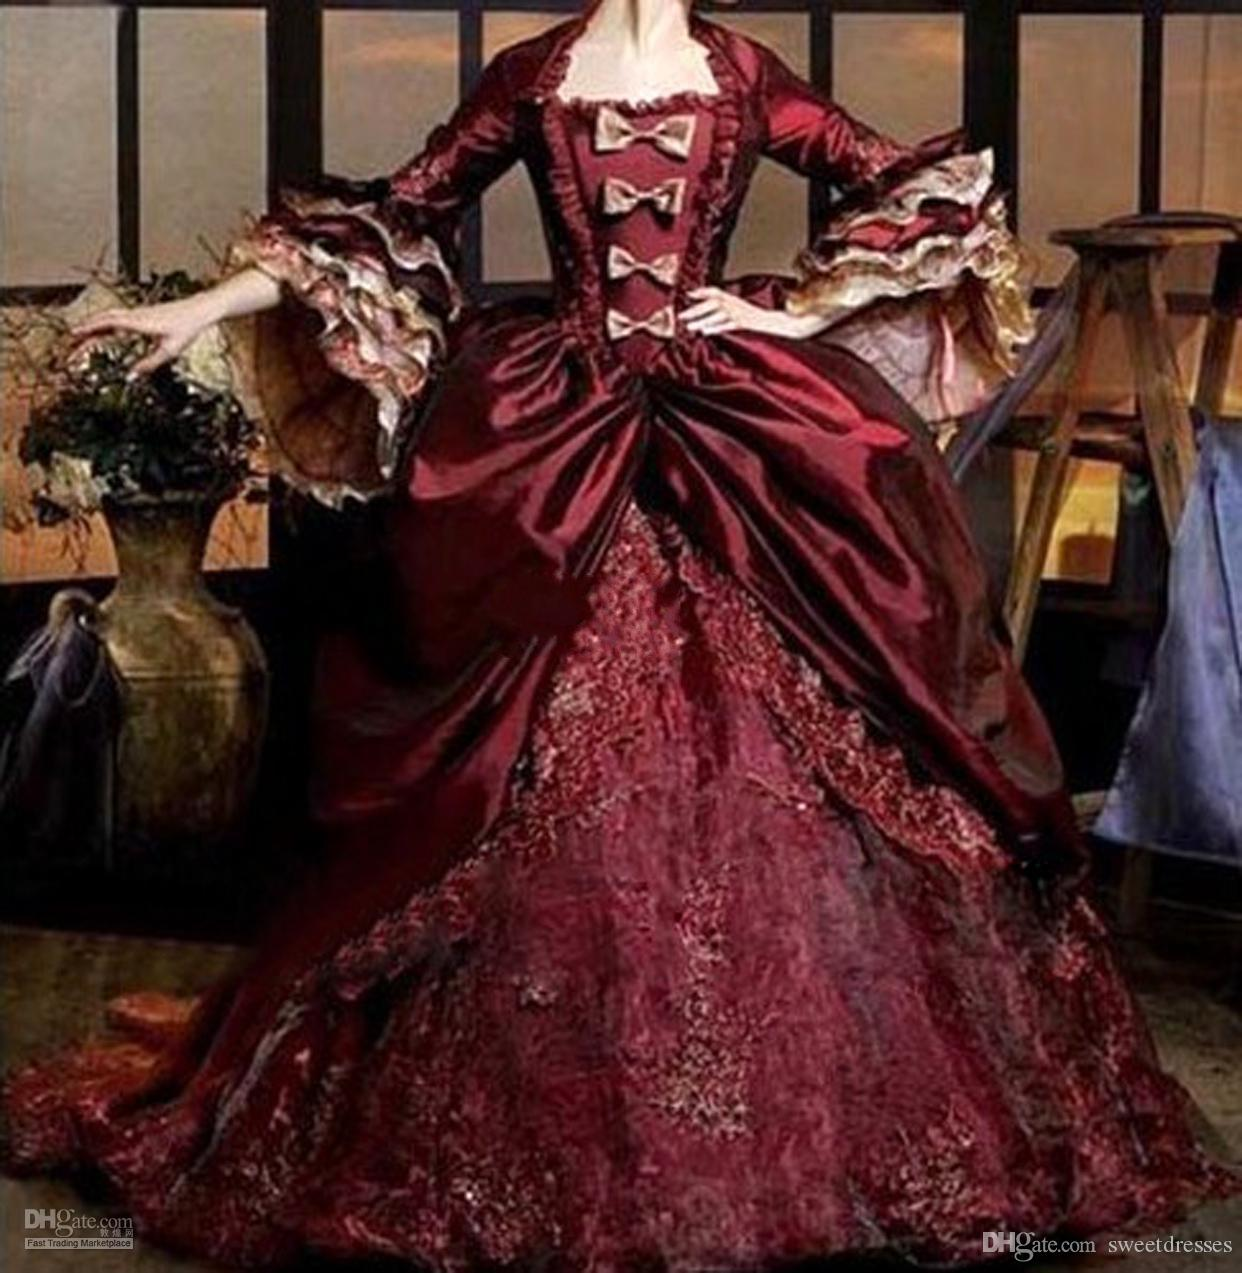 Half Sleeves Wine Red Quinceanera Dress Pleat Lace Appliques Floor Length Renaissance Victorian Period Gothic Vintage